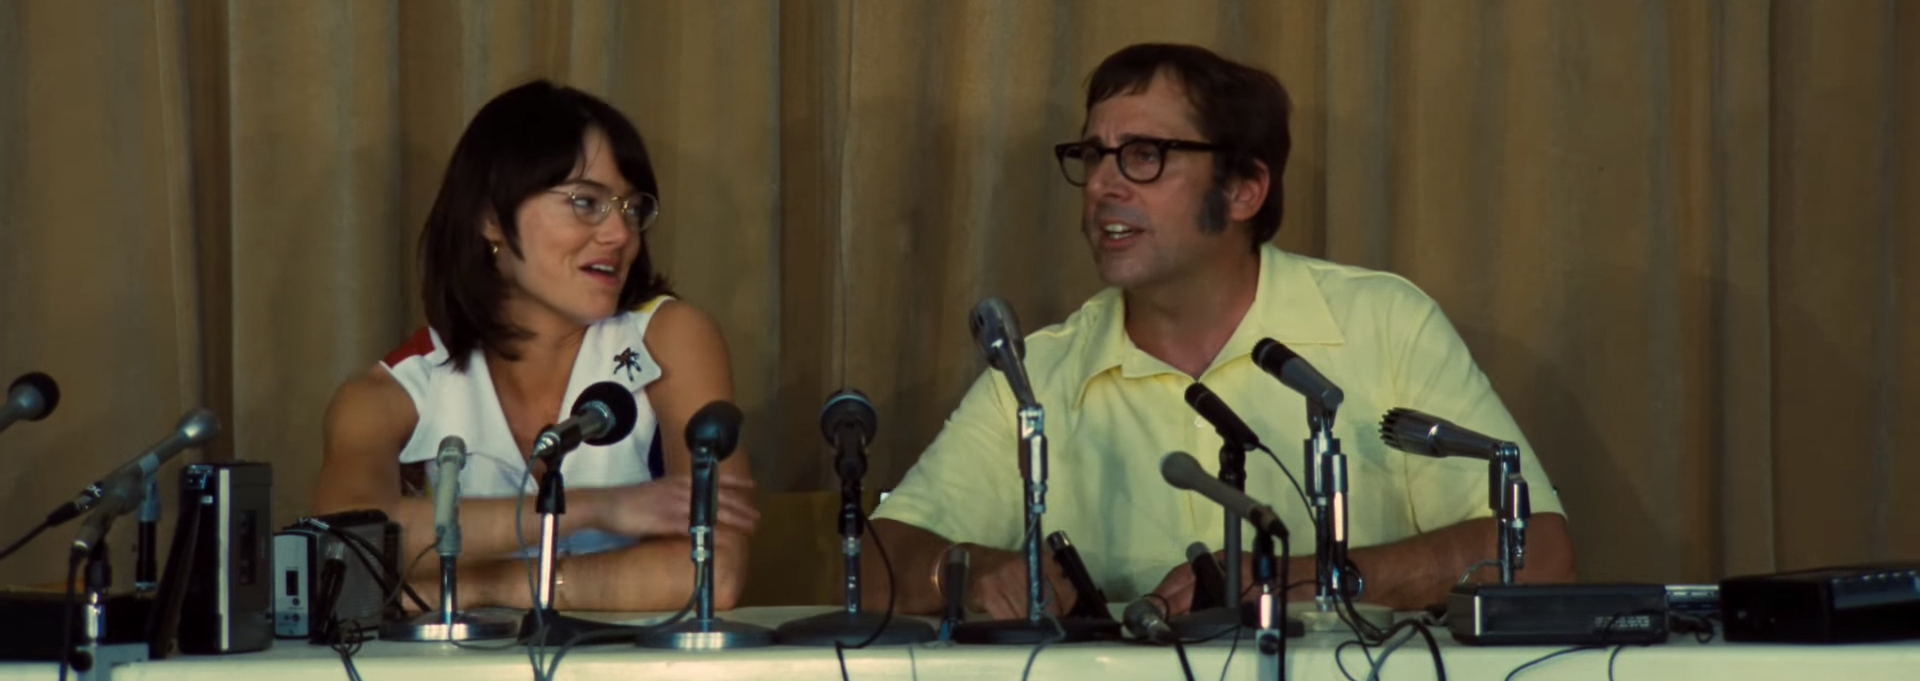 Battle of the Sexes. Image Credit: Fox Searchlight.